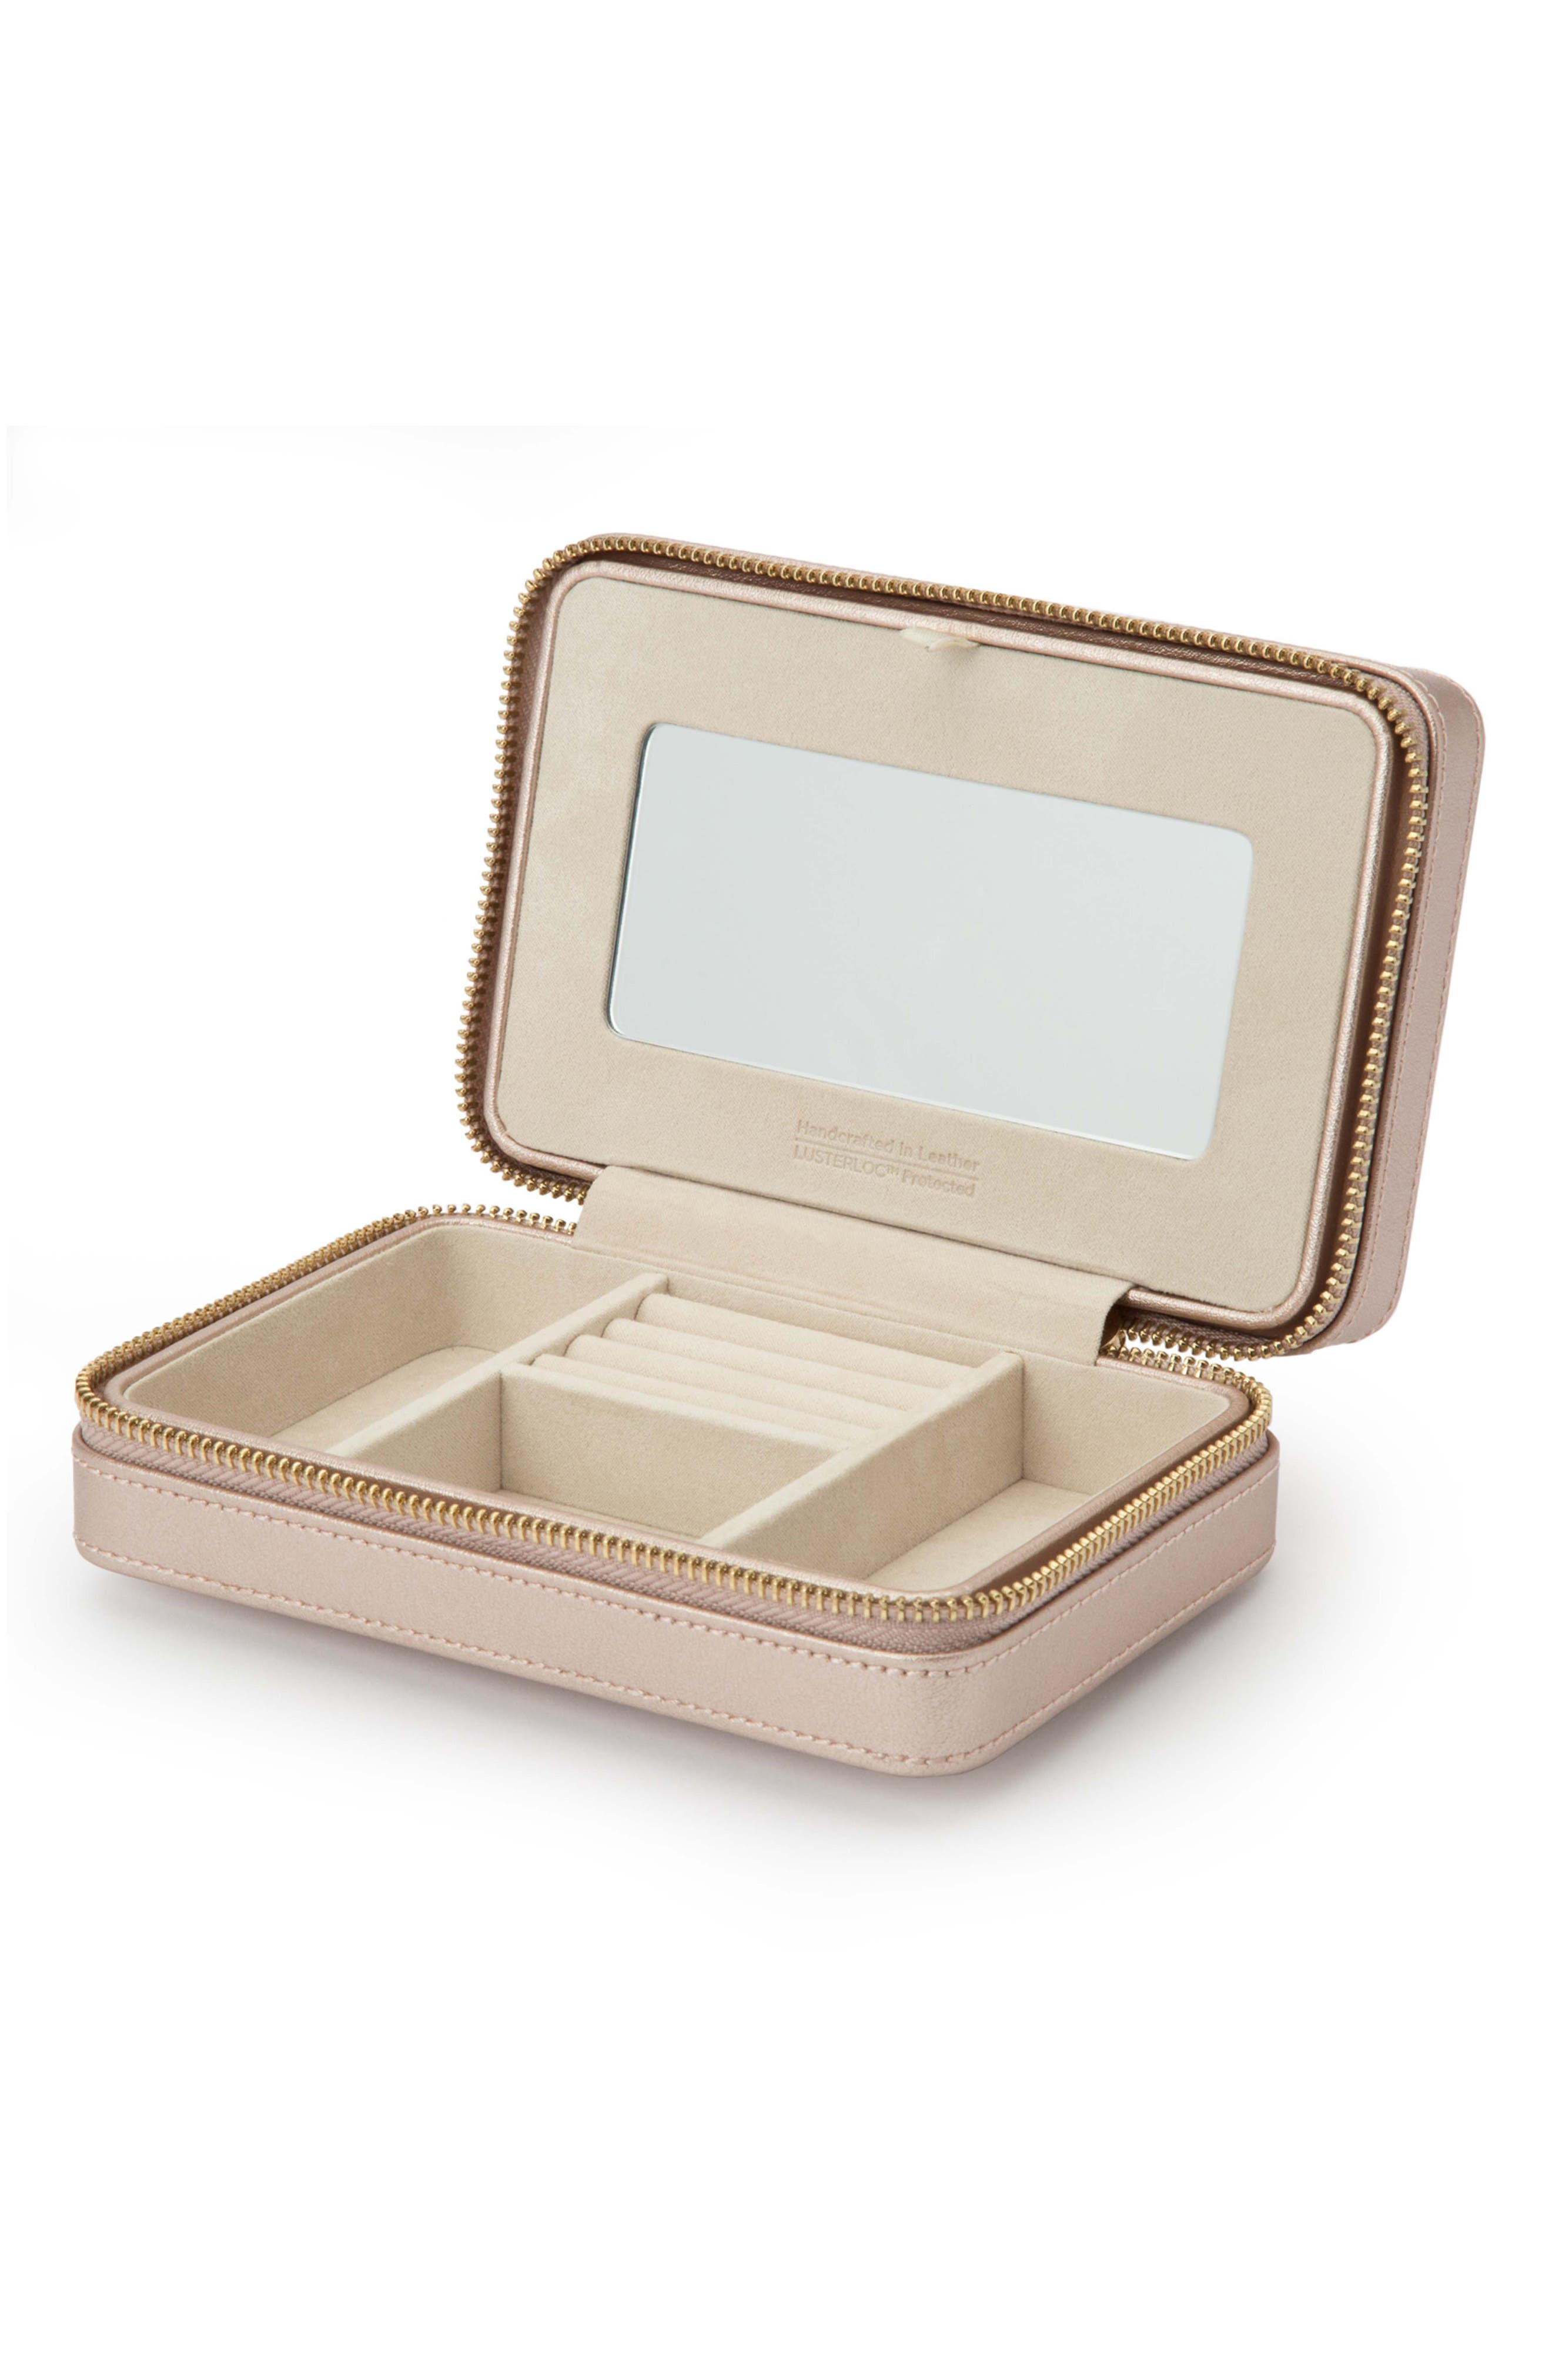 Palermo Zip Jewelry Case,                             Alternate thumbnail 2, color,                             ROSE GOLD